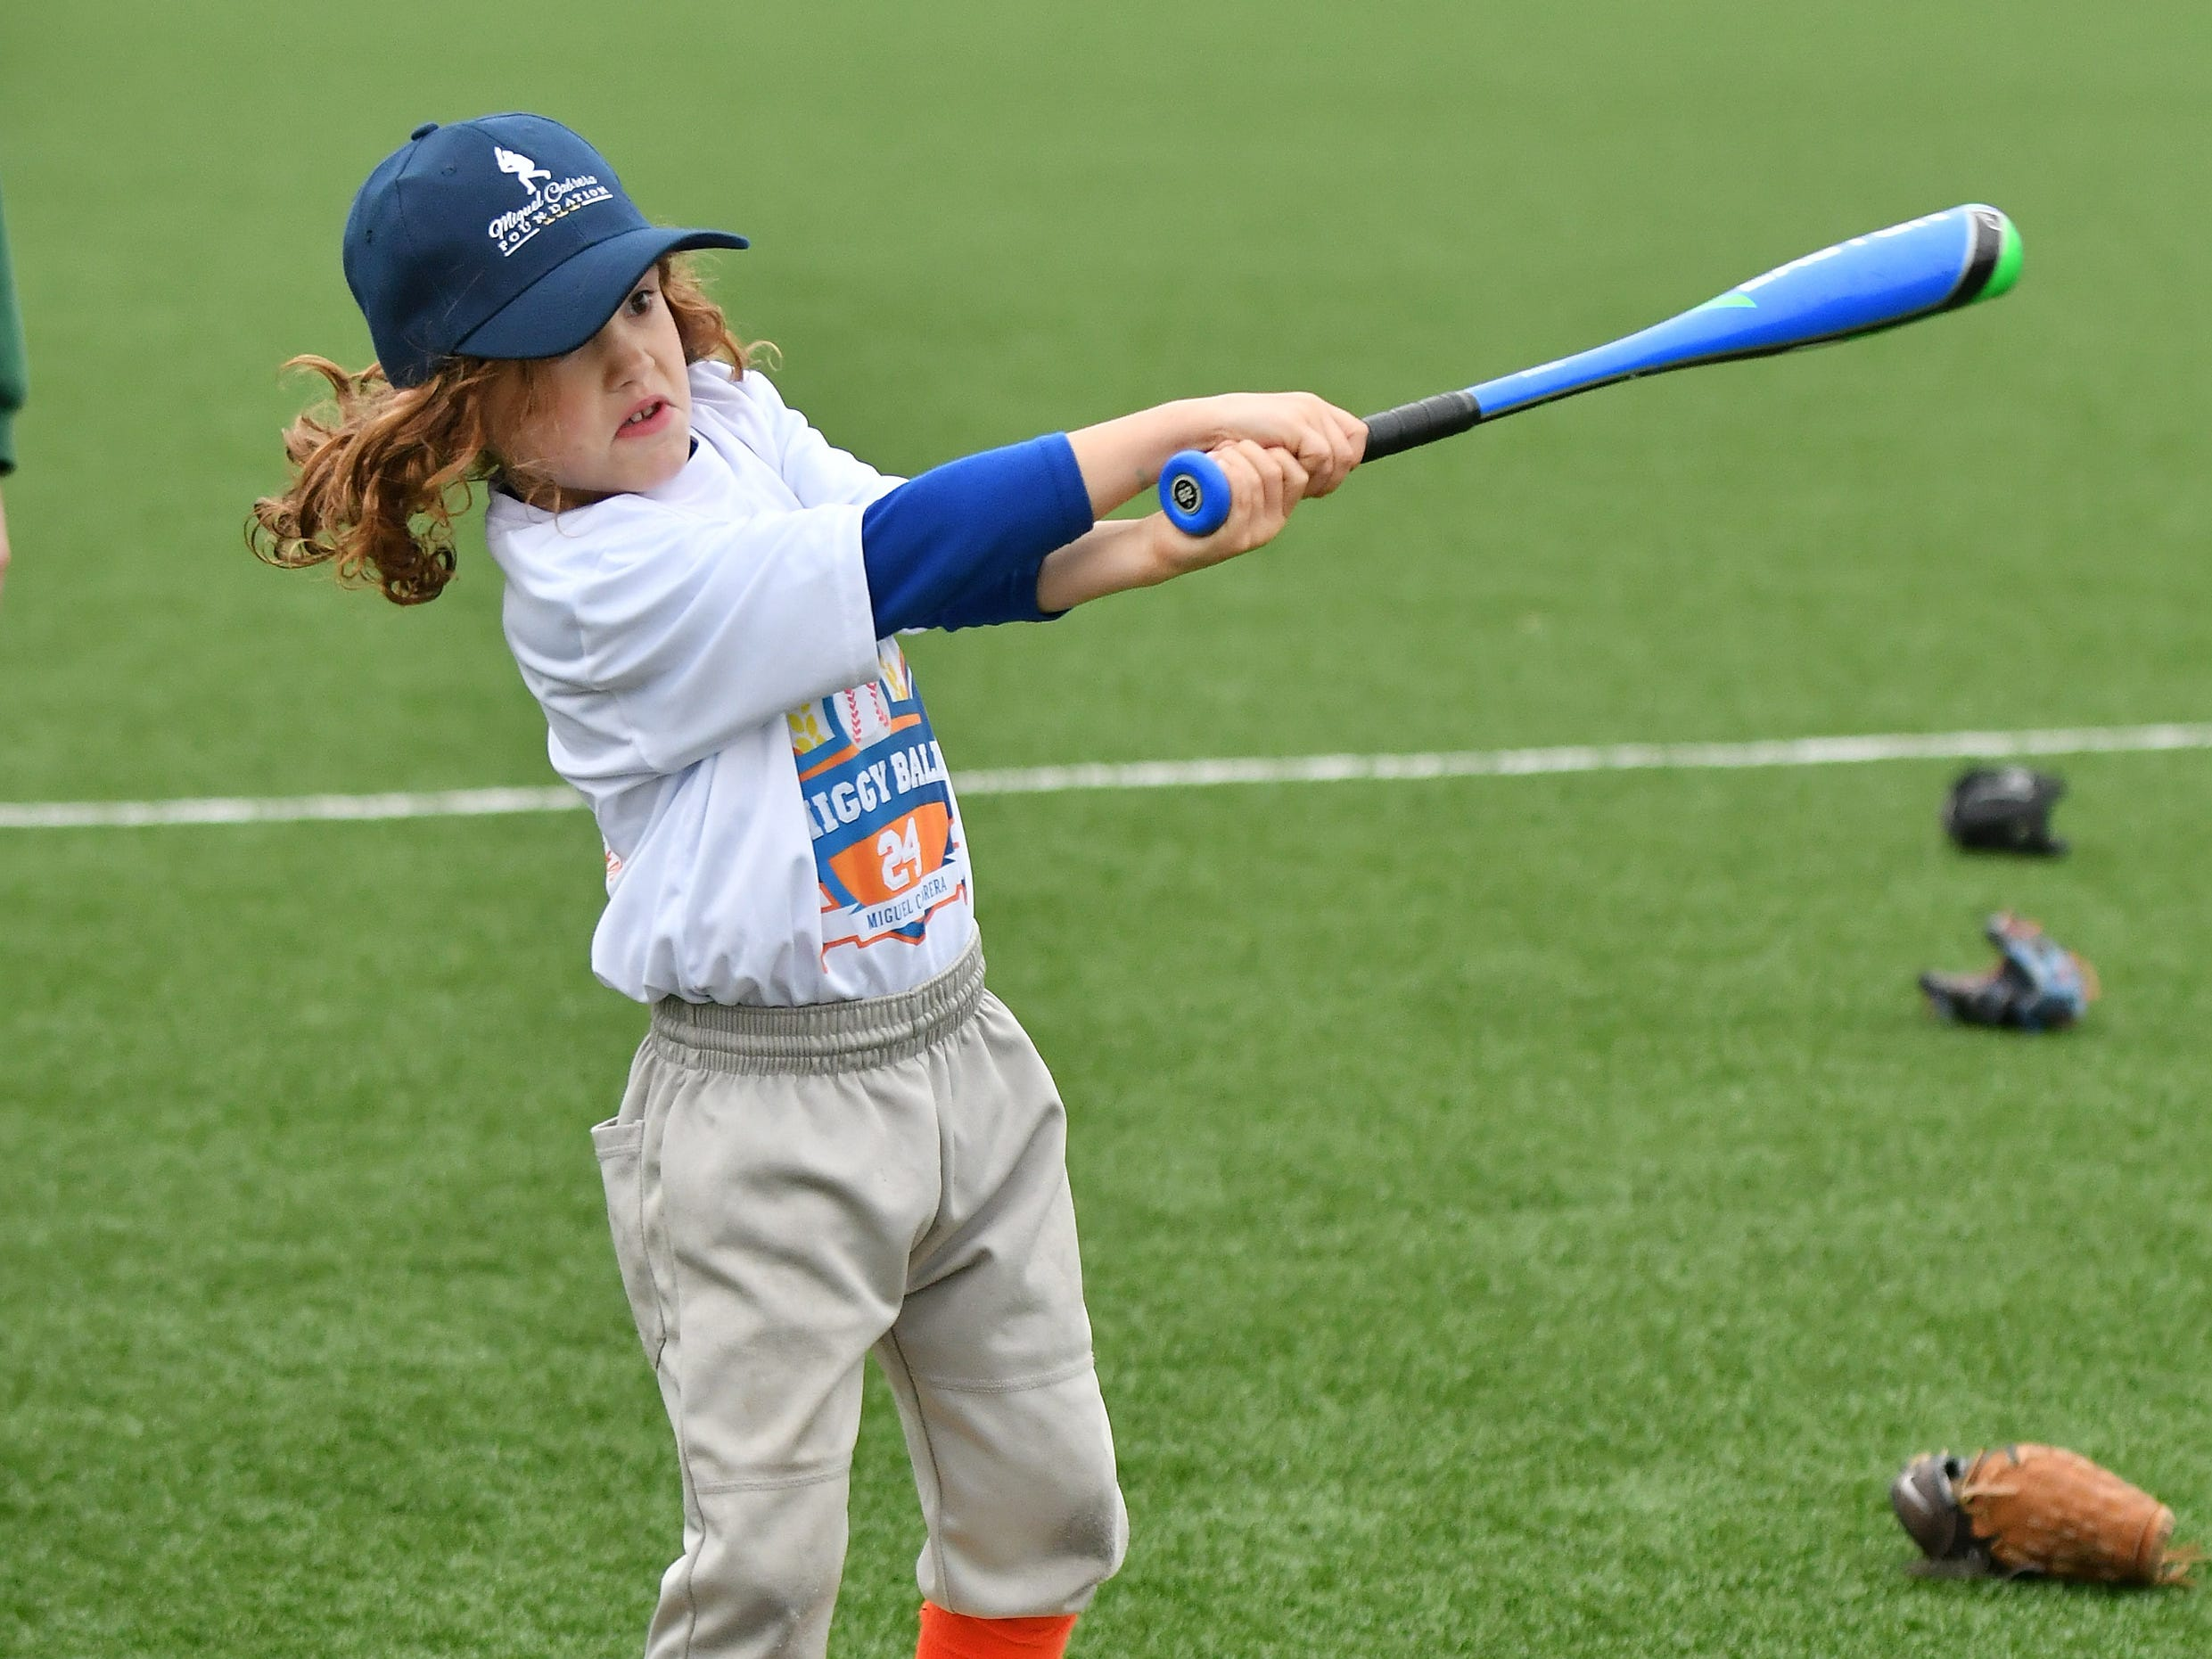 Isaac Gourley, 6, of Detroit keeps his balance while swinging the bat.